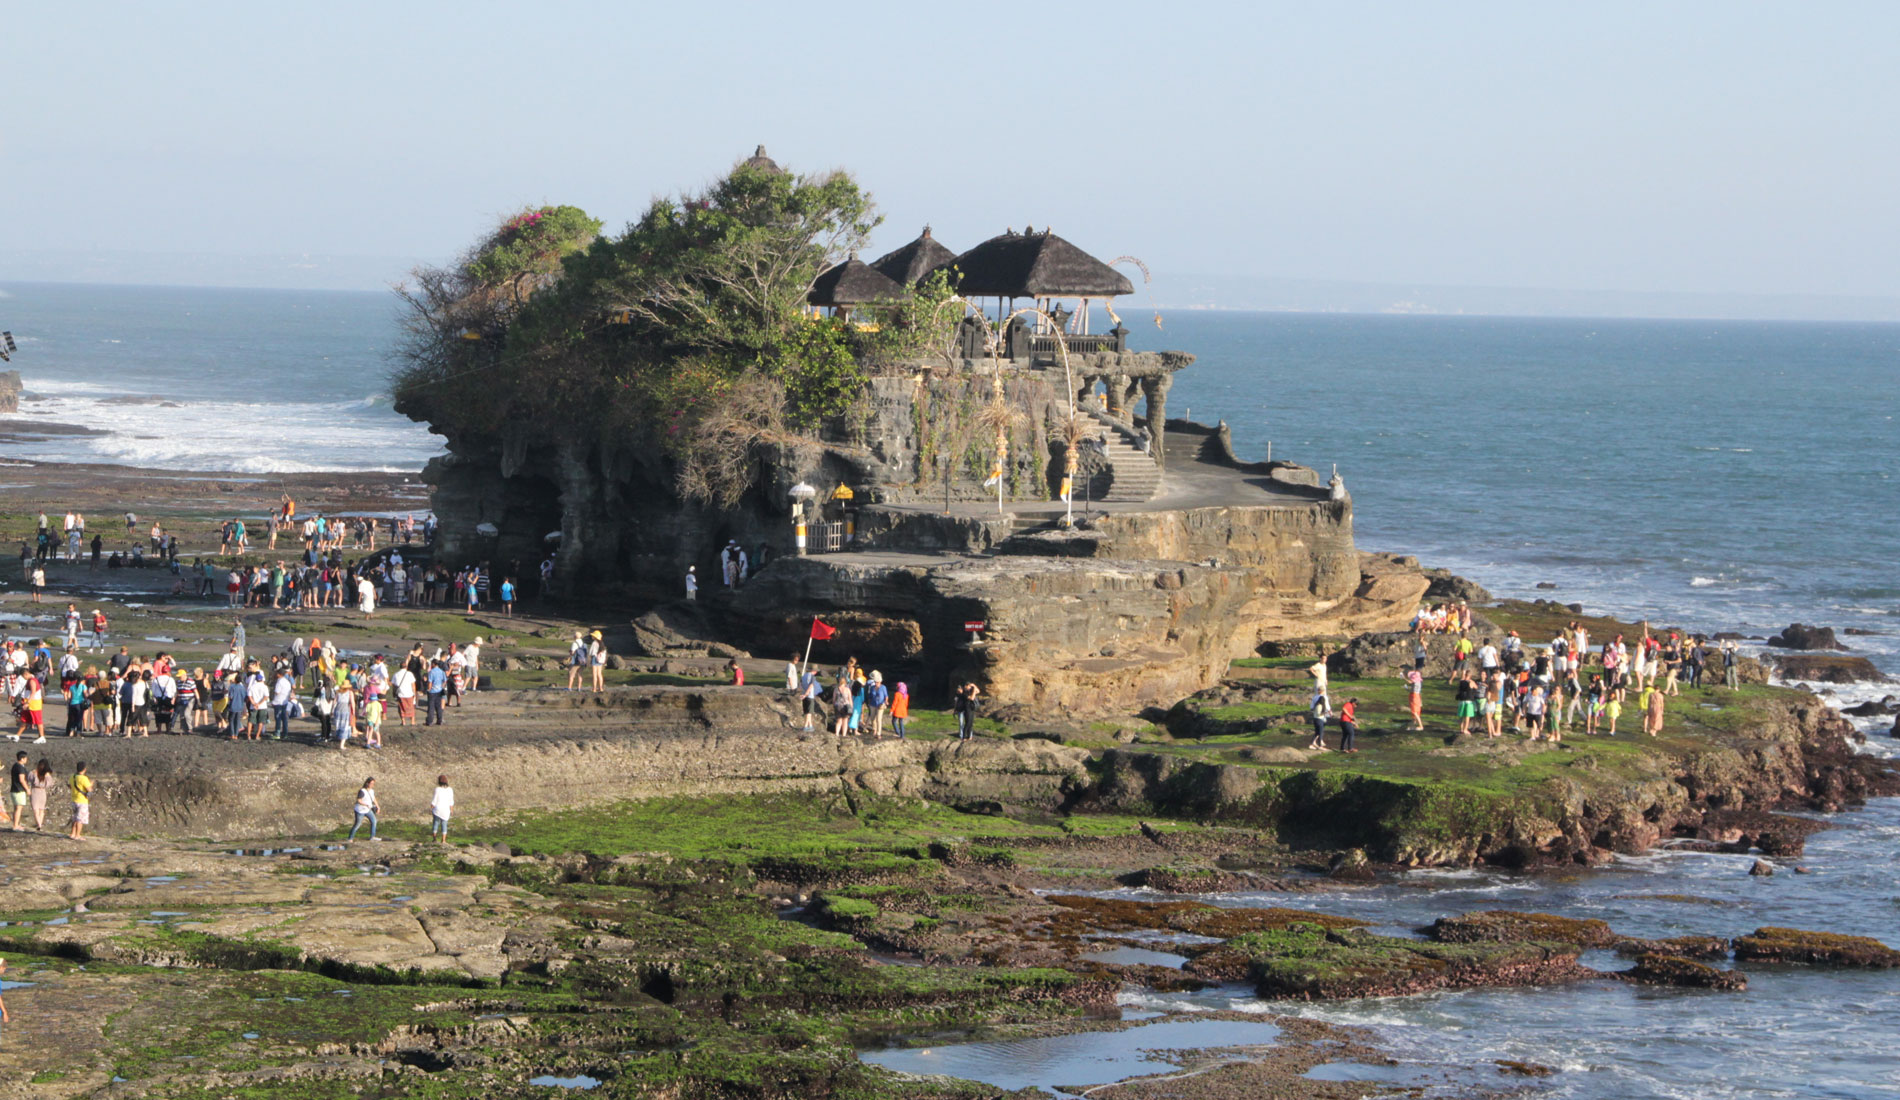 TanahLot - Things To Do in Bali Tours Activities